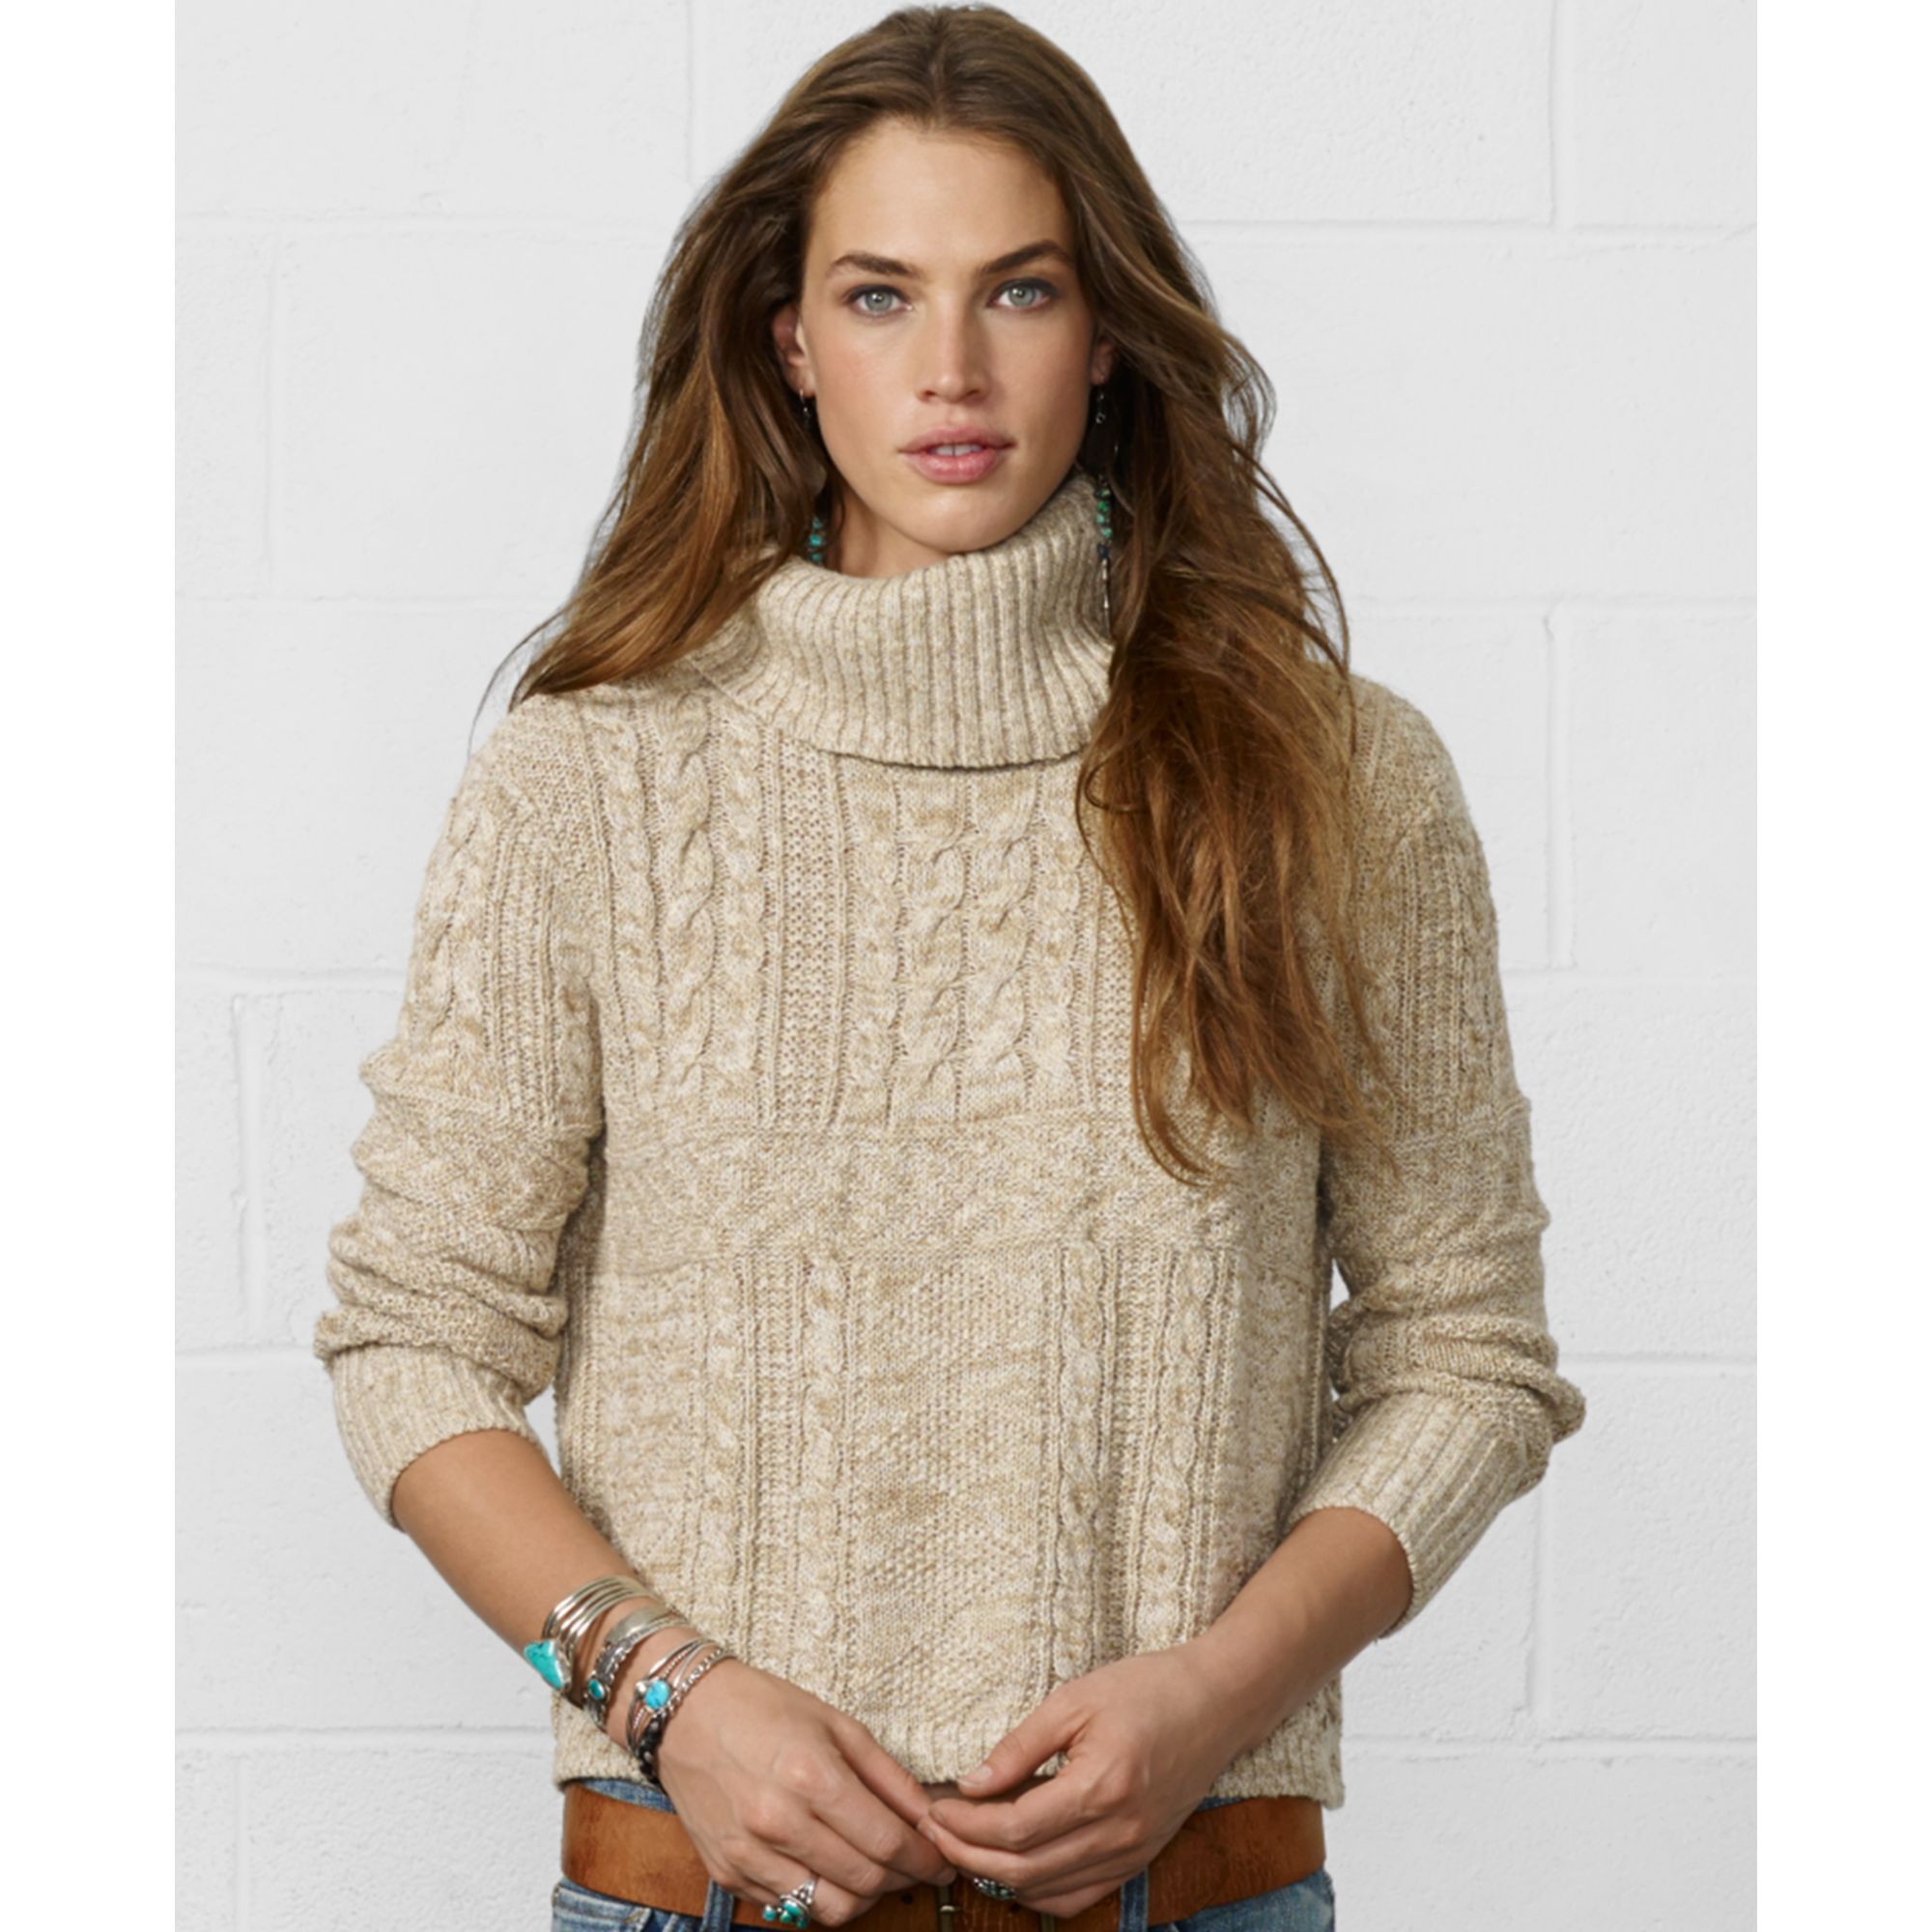 Denim & supply ralph lauren Cropped Cableknit Turtleneck Sweater in Beige (Natural)